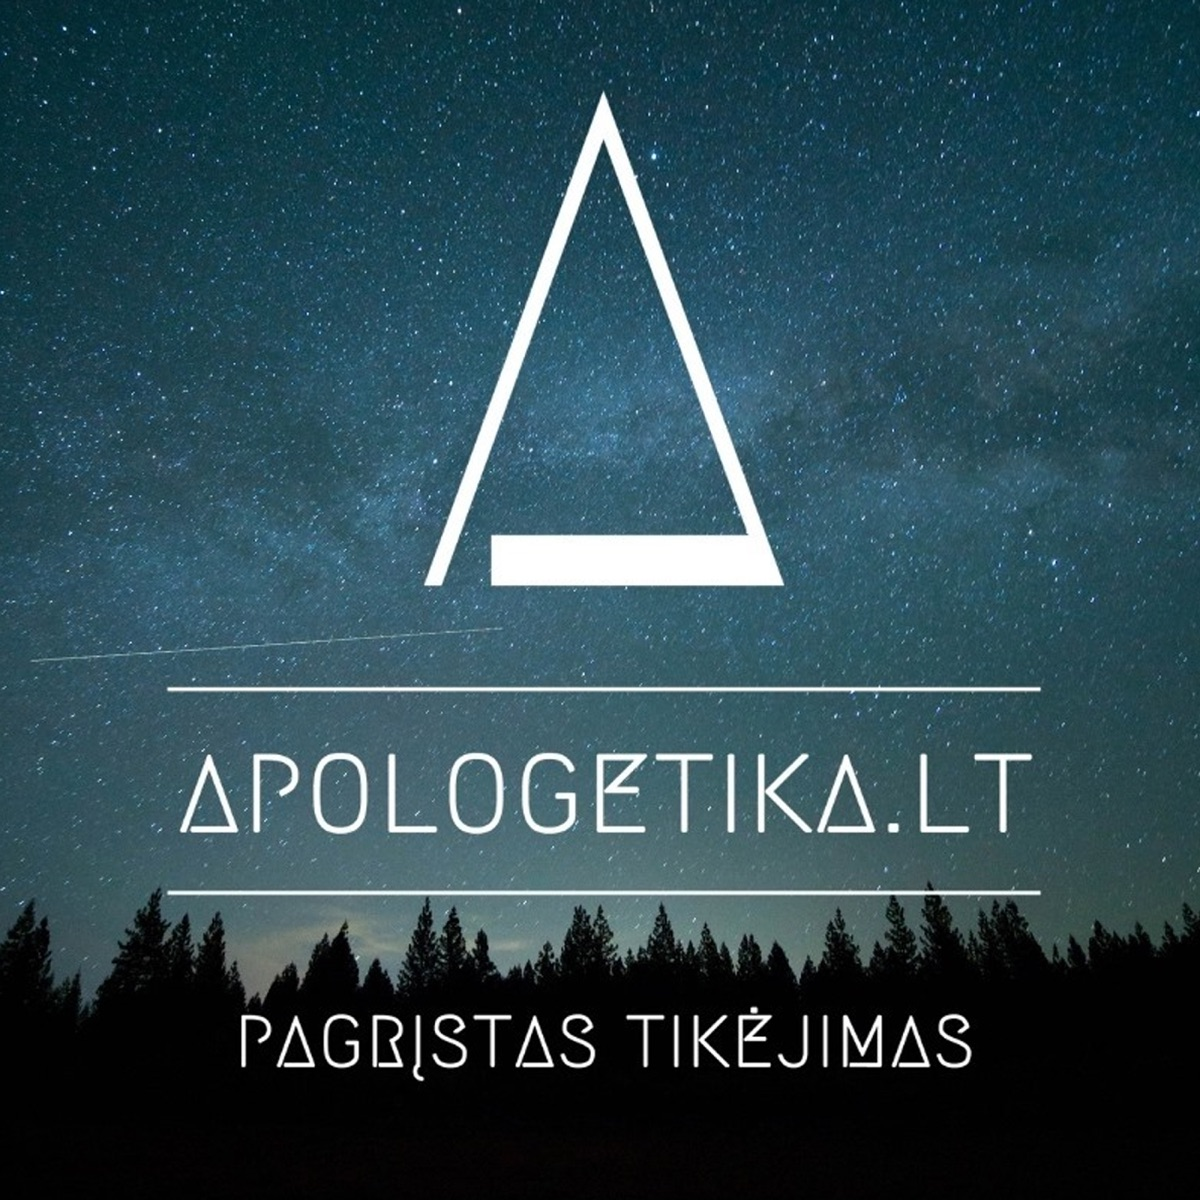 apologetika.lt